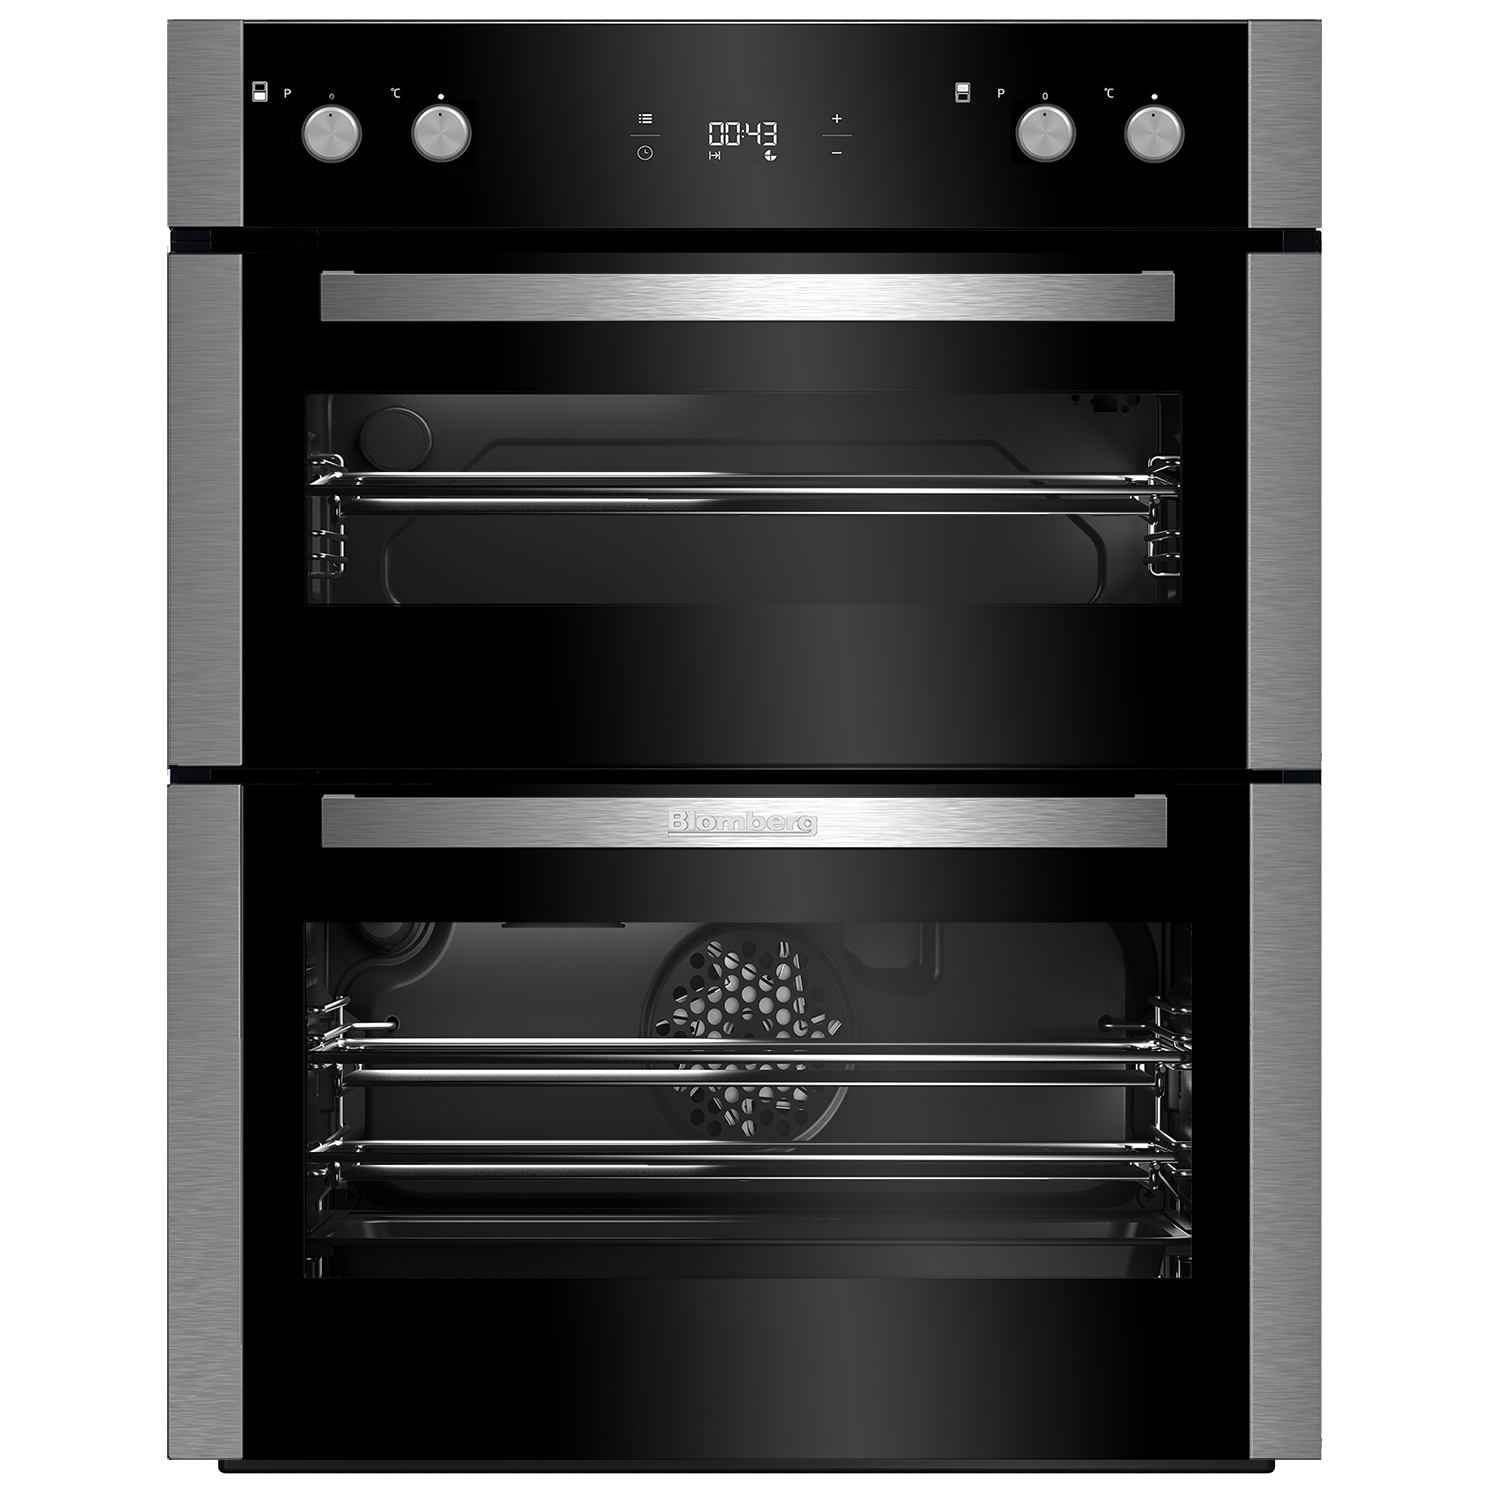 blomberg otn9302x 70 cm built under double oven with 5 year guarantee 2 only display models. Black Bedroom Furniture Sets. Home Design Ideas